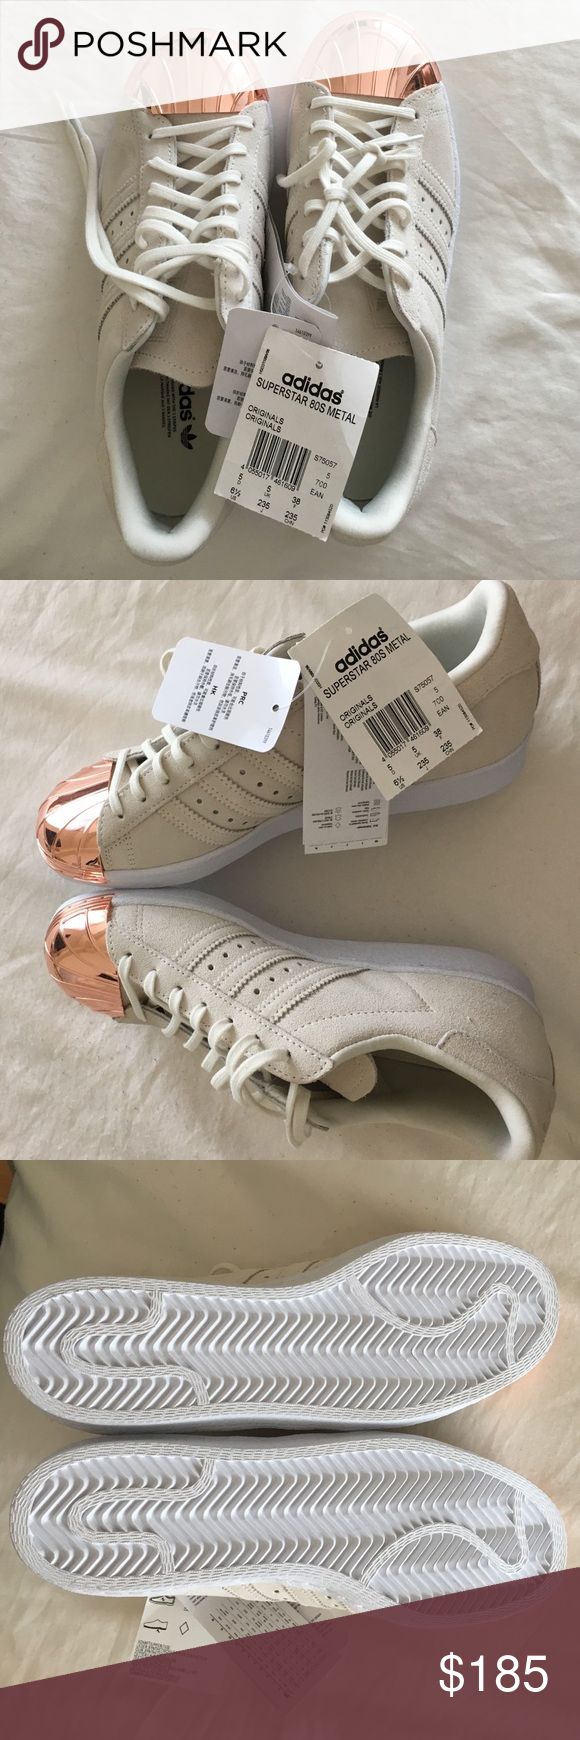 huge selection of 7cd1b 598f6 Adidas Superstar 80 s Rose gold Toe sneakers Brand new with tags, never used,  no damages, in its original package,increadible sneakers!! adidas Shoes ...